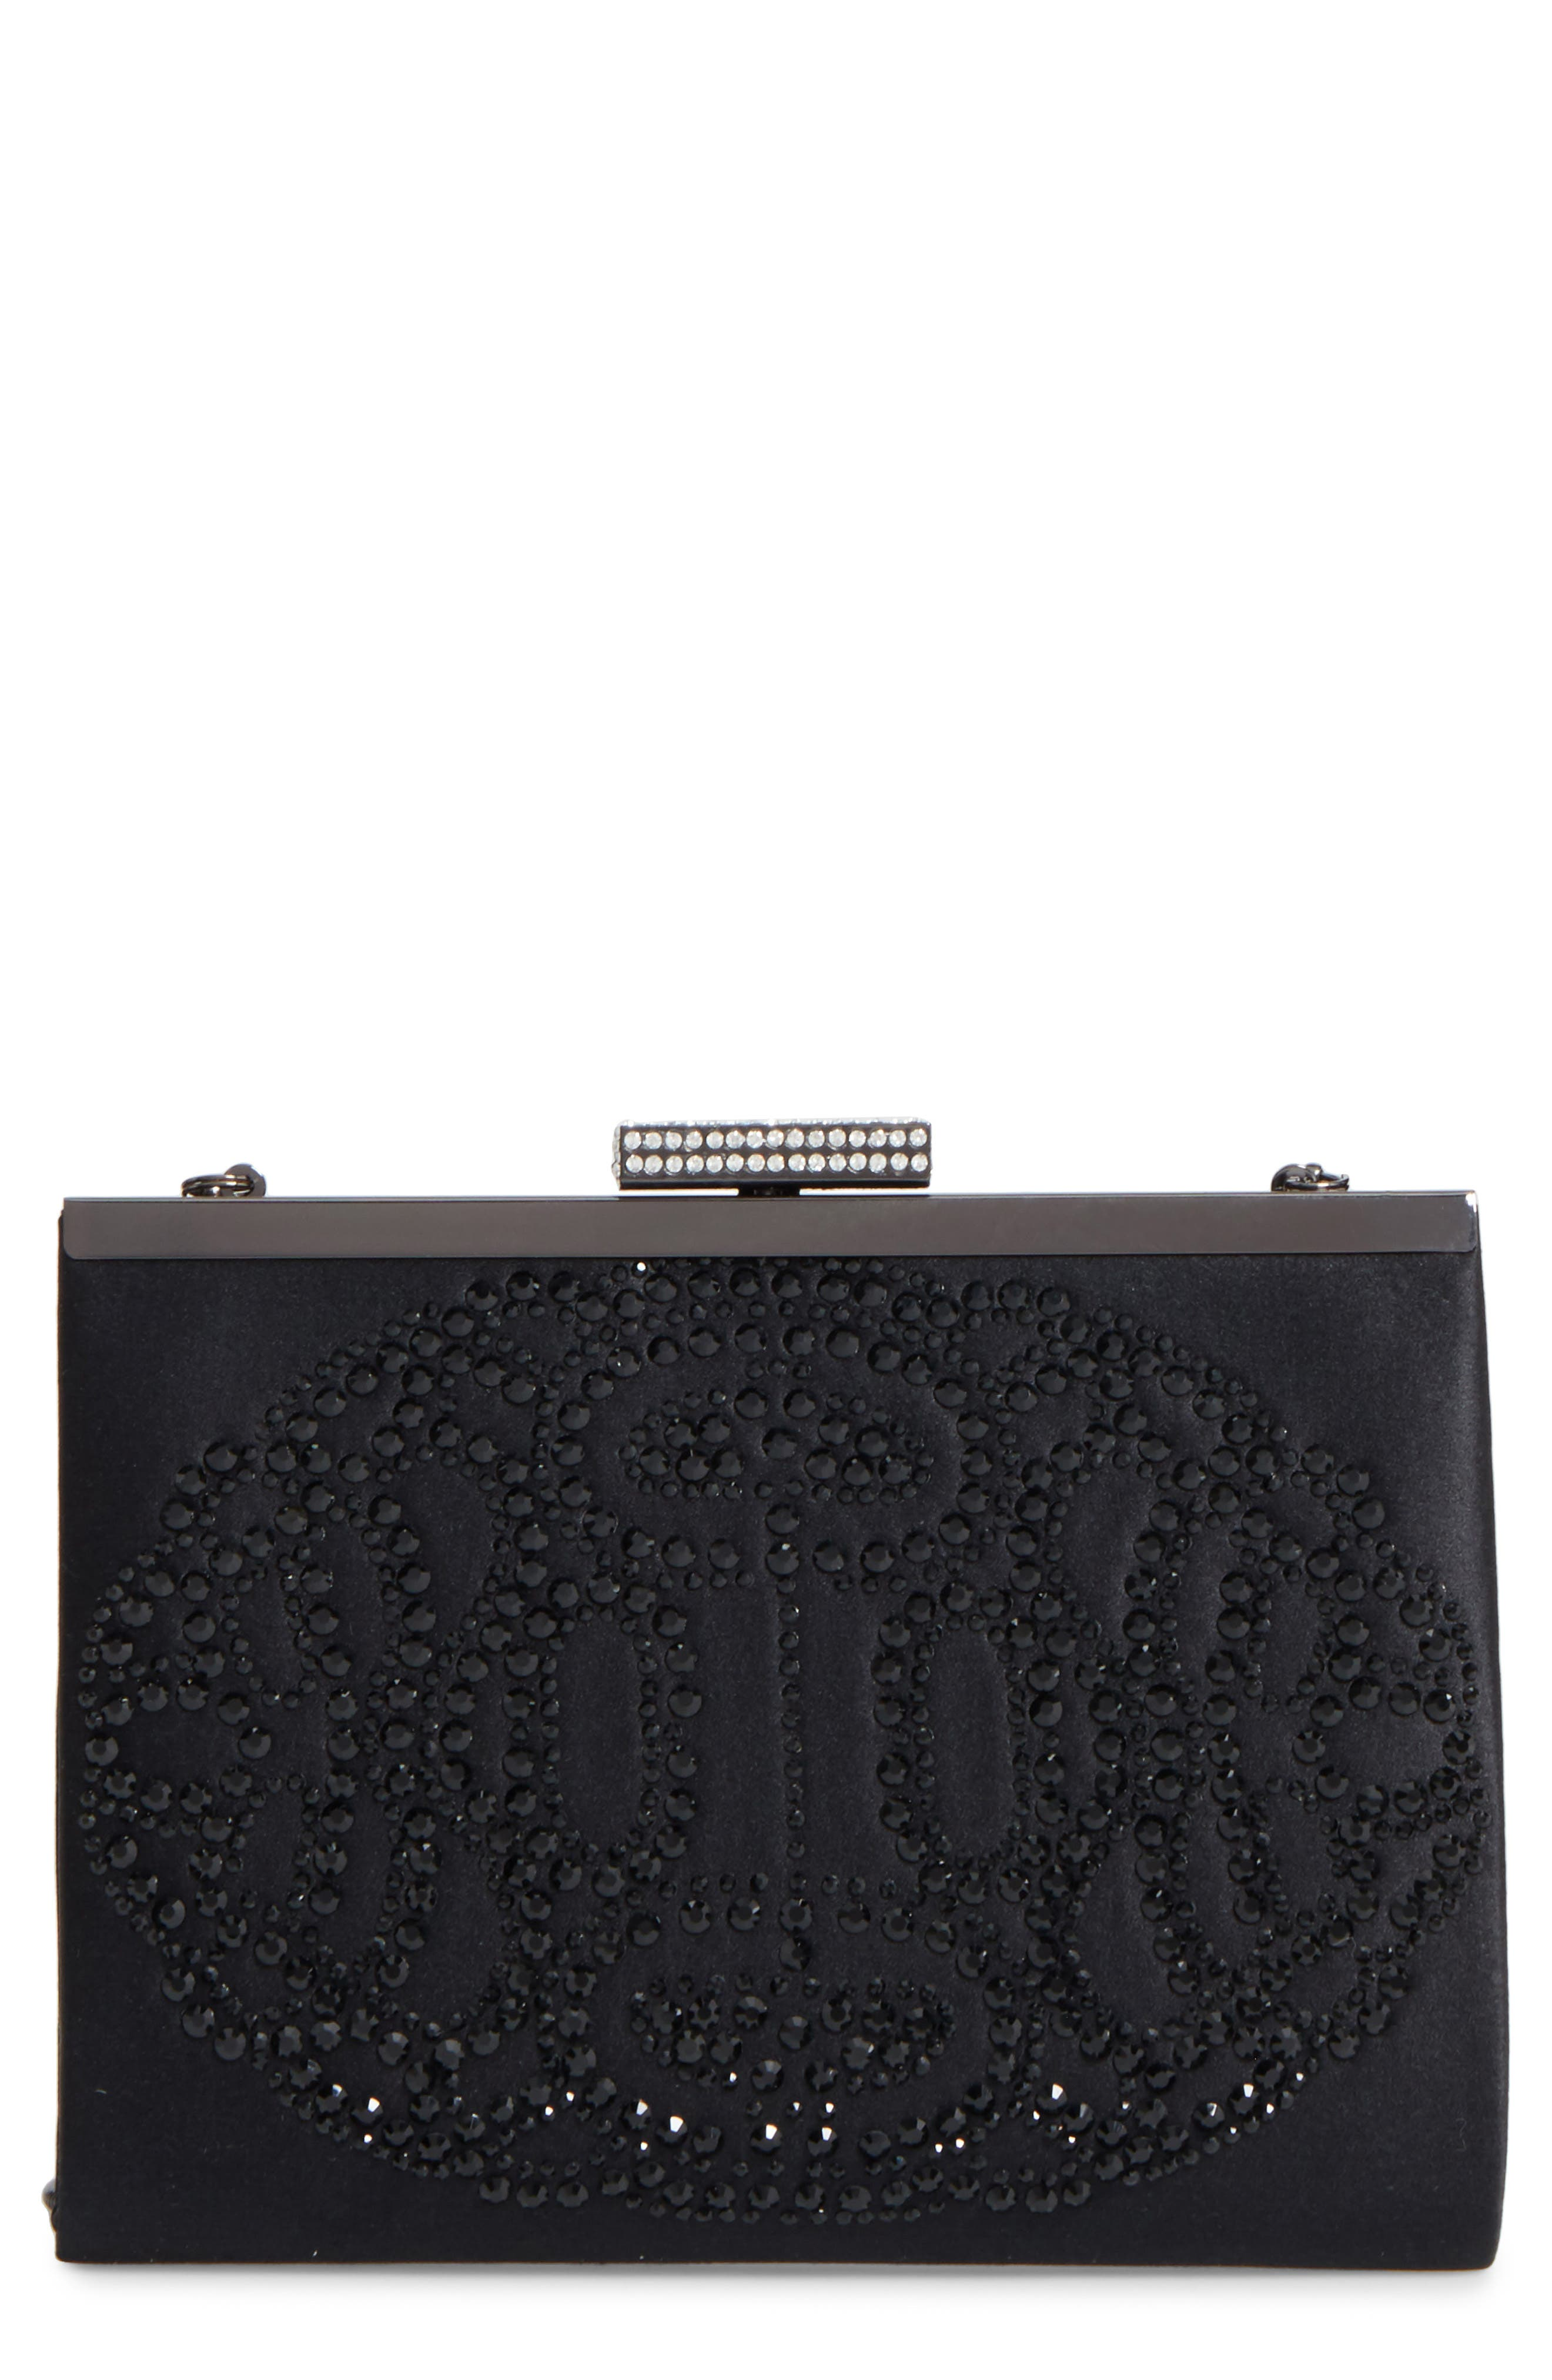 Alice Frame Clutch,                             Main thumbnail 1, color,                             001